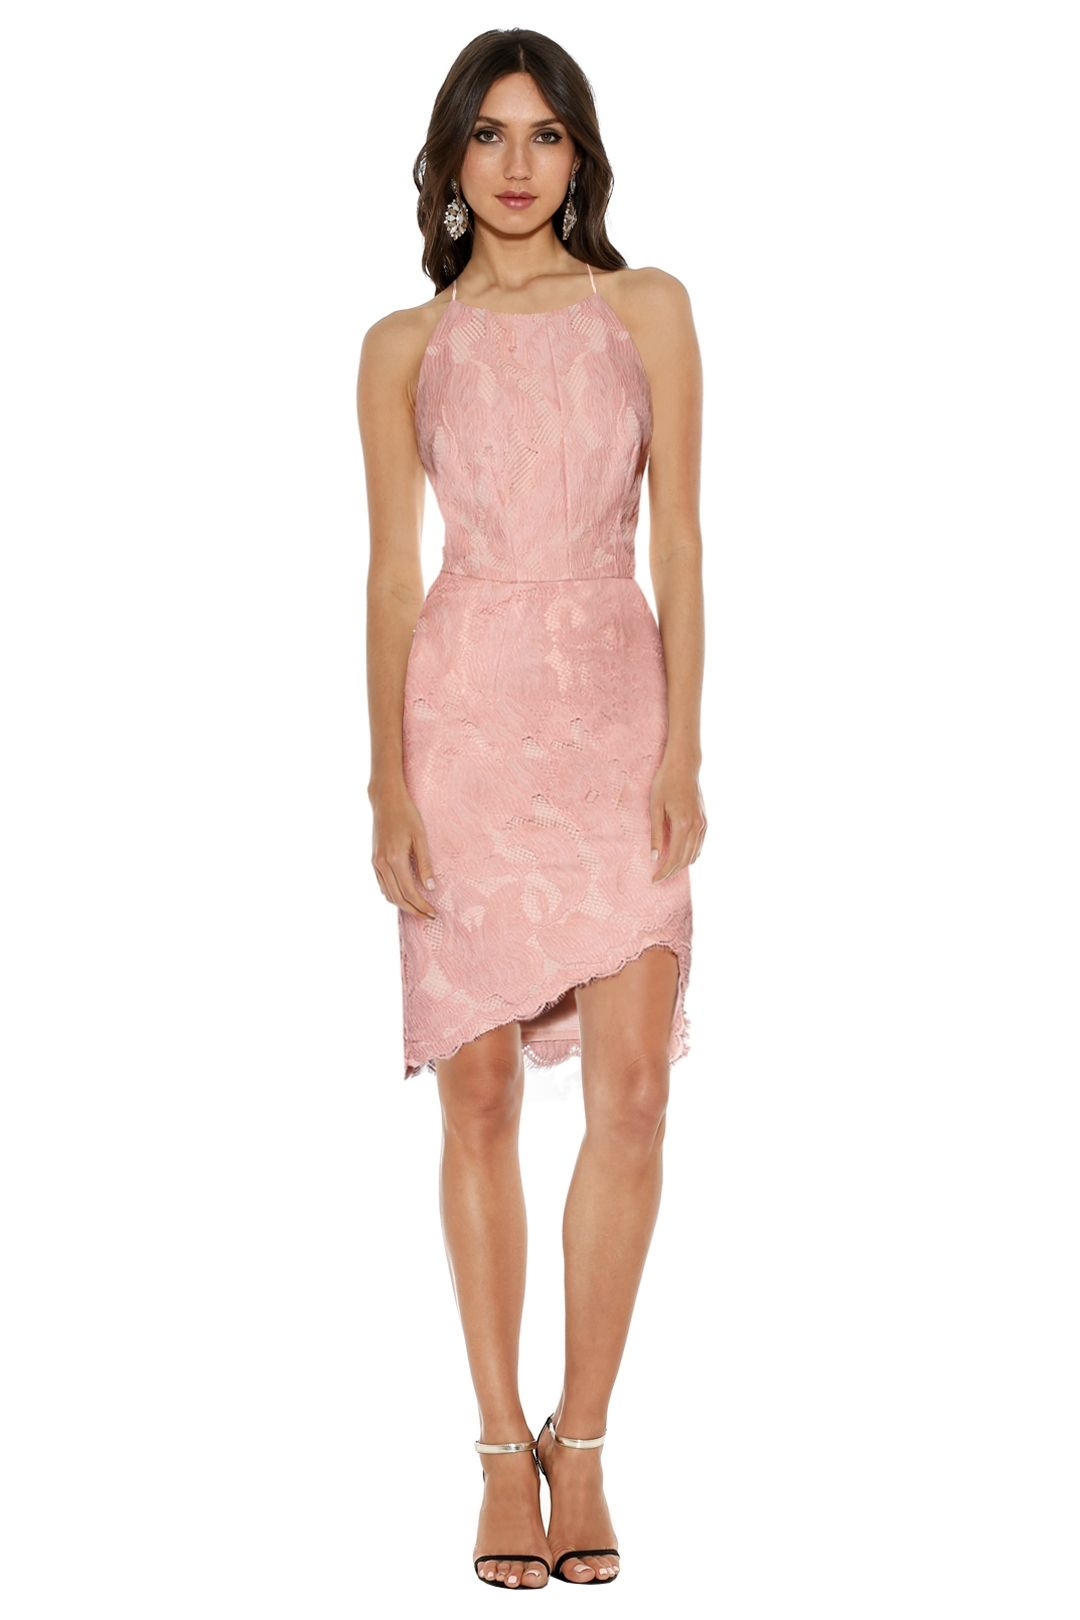 Grace and Hart - Allure Fitted Midi - Dusty Pink - Front